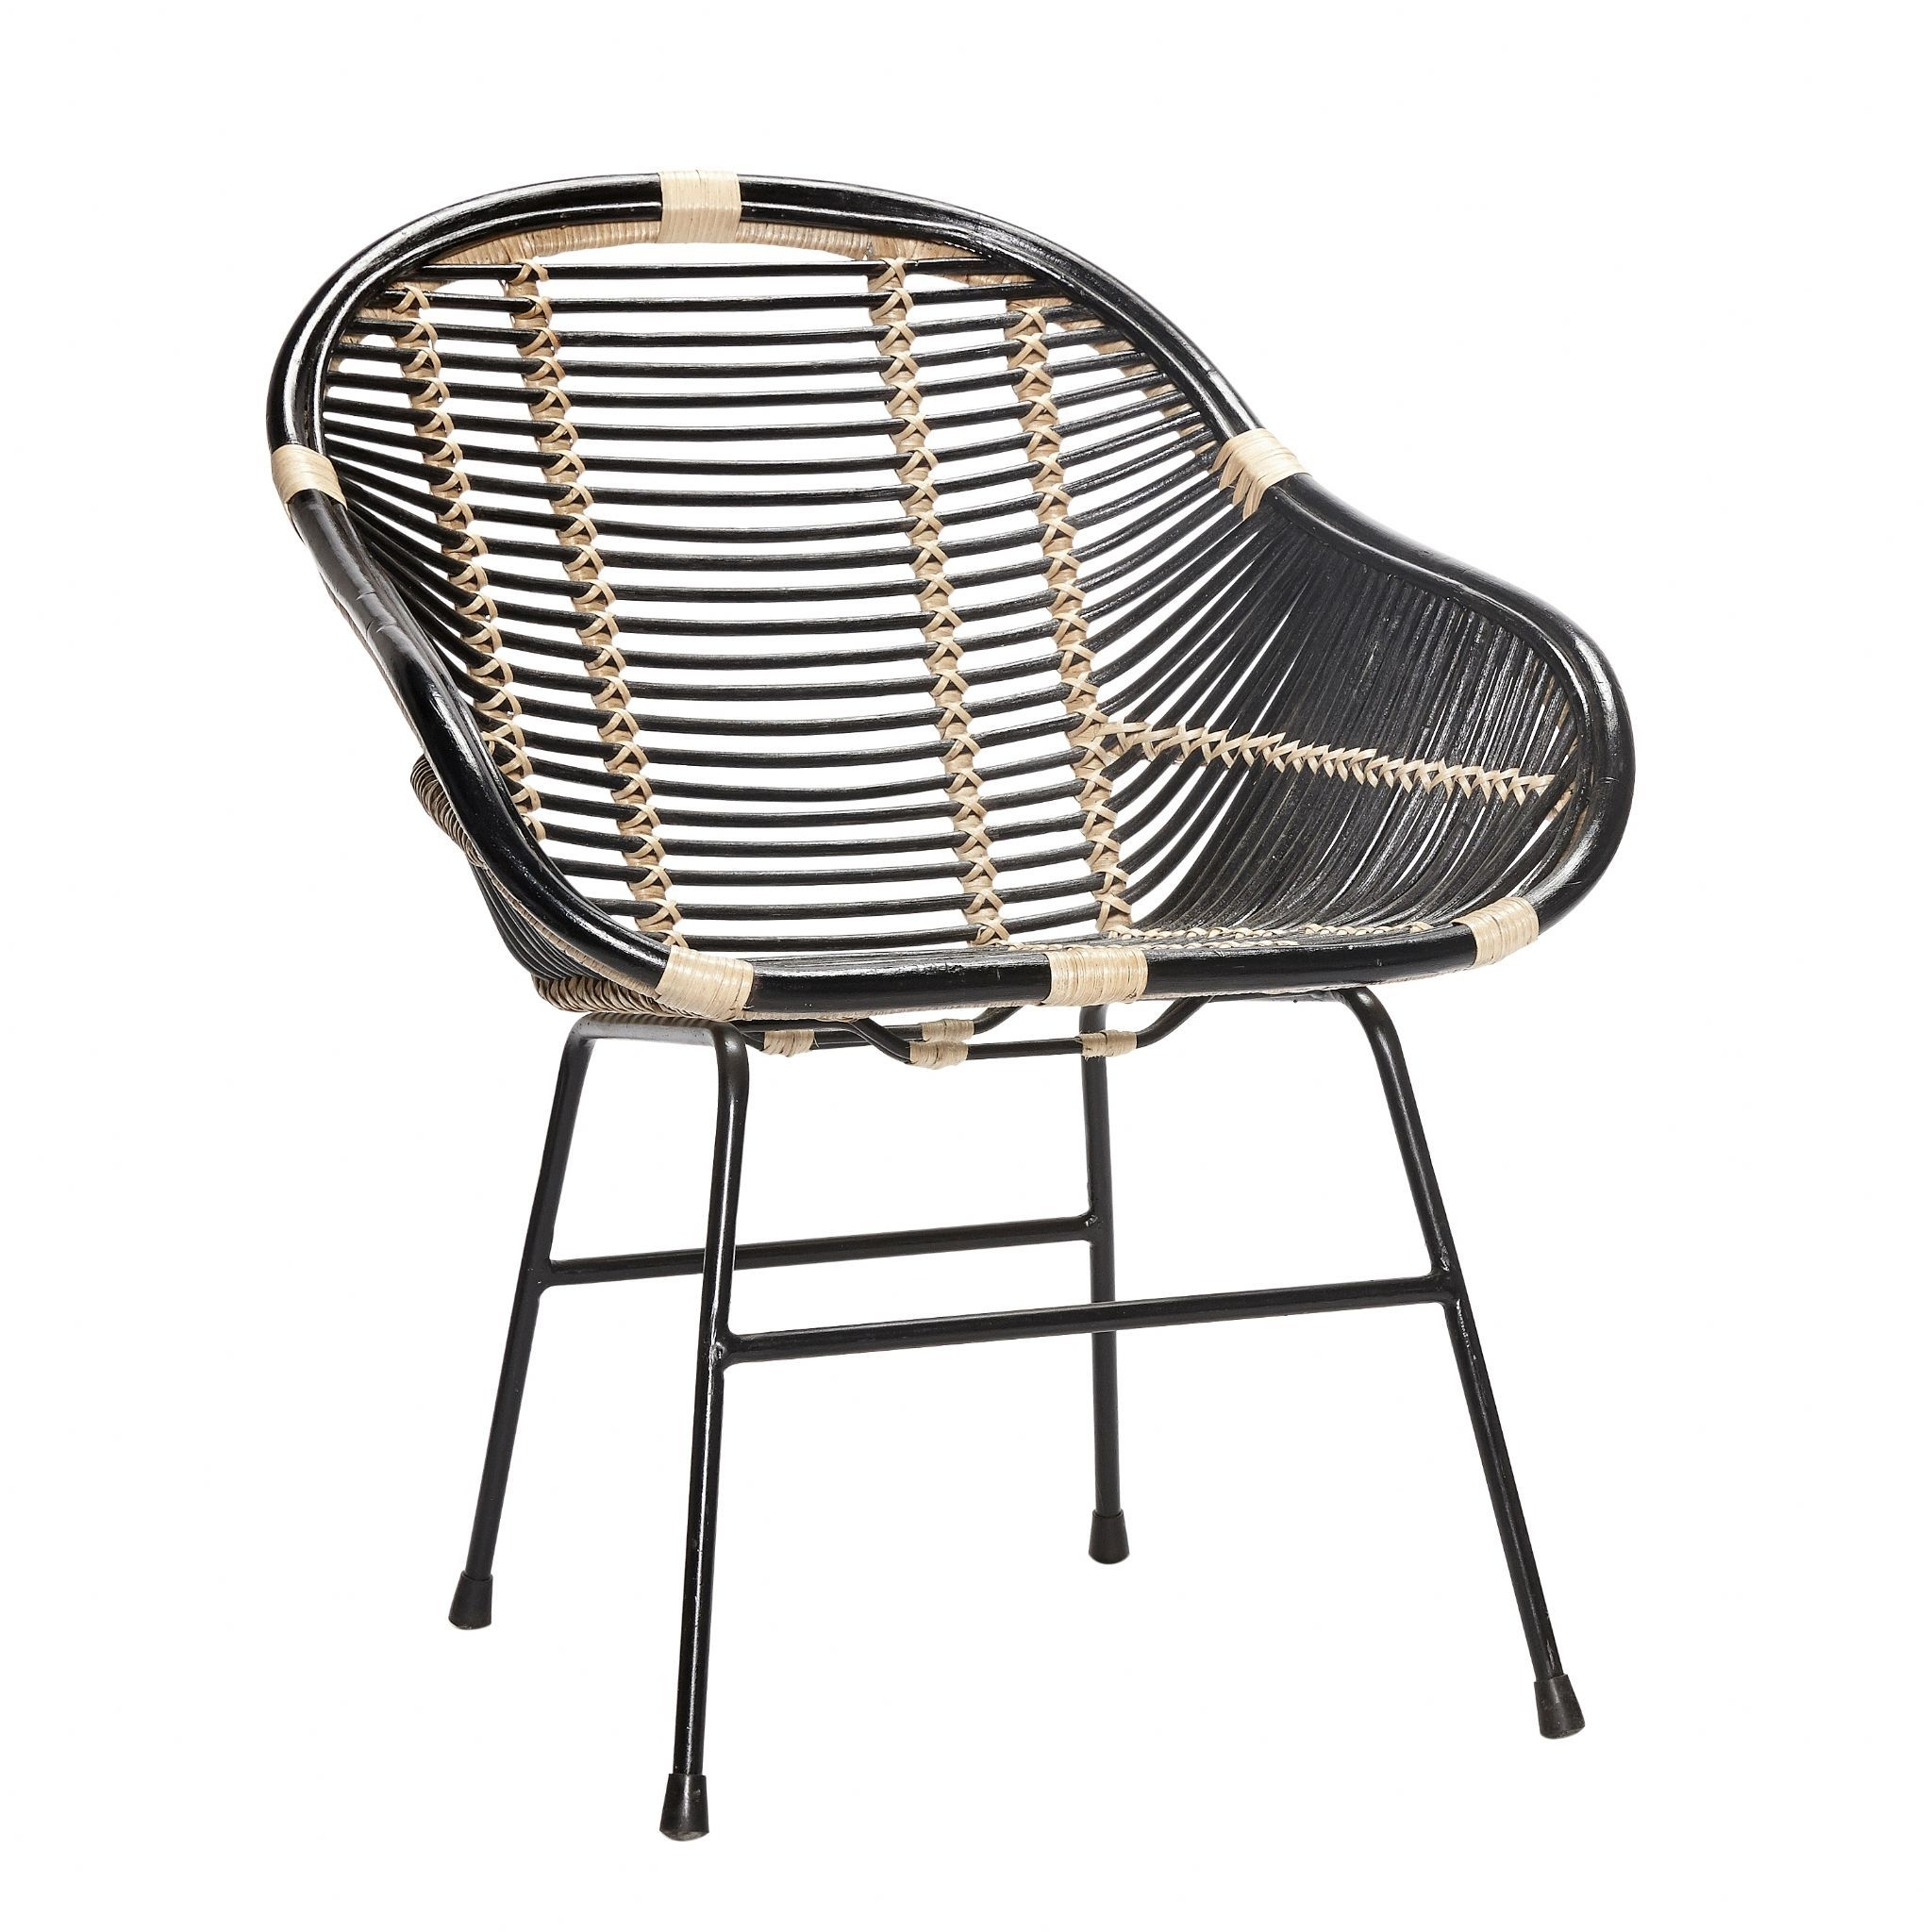 Inspiration about The Capri Black And Natural Rattan Chair Looks Great With A Within Widely Used Magnolia Home Entwine Rattan Arm Chairs (#17 of 20)